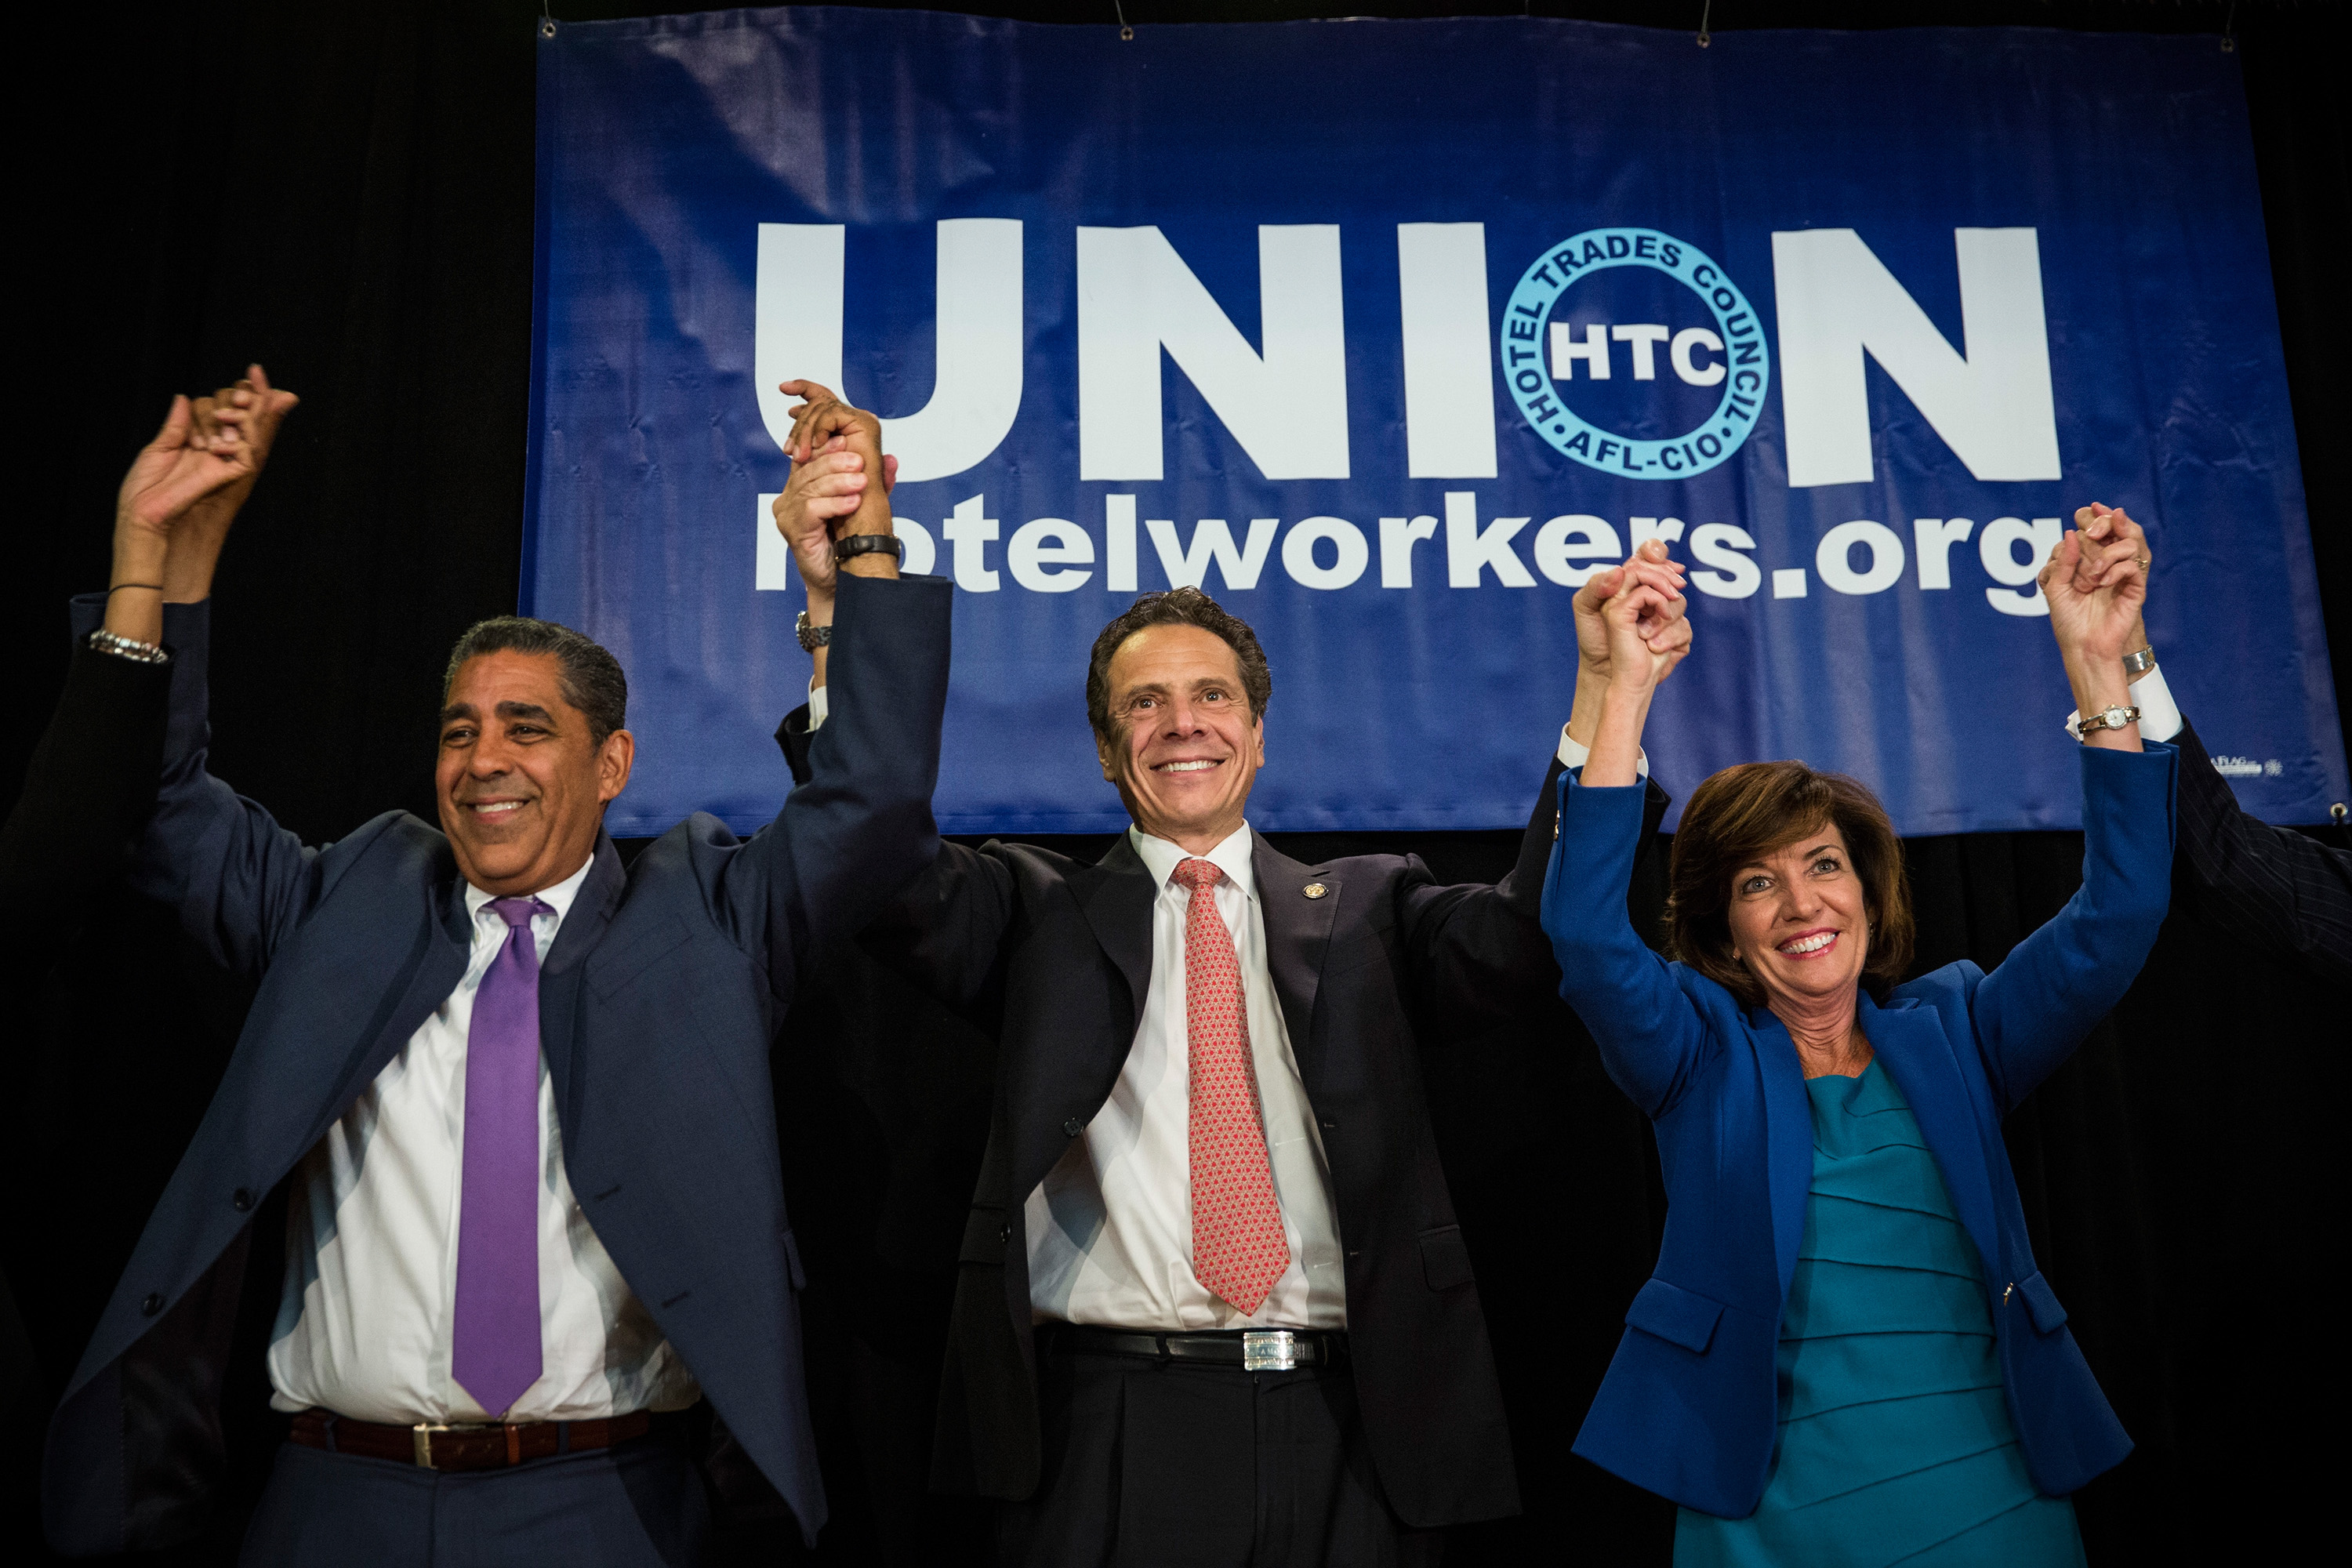 Kathy Hochul with Gov. Andrew Cuomo and State Senator Adriano Espaillat in Manhattan. (Photo: Andrew Burton/Getty Images)